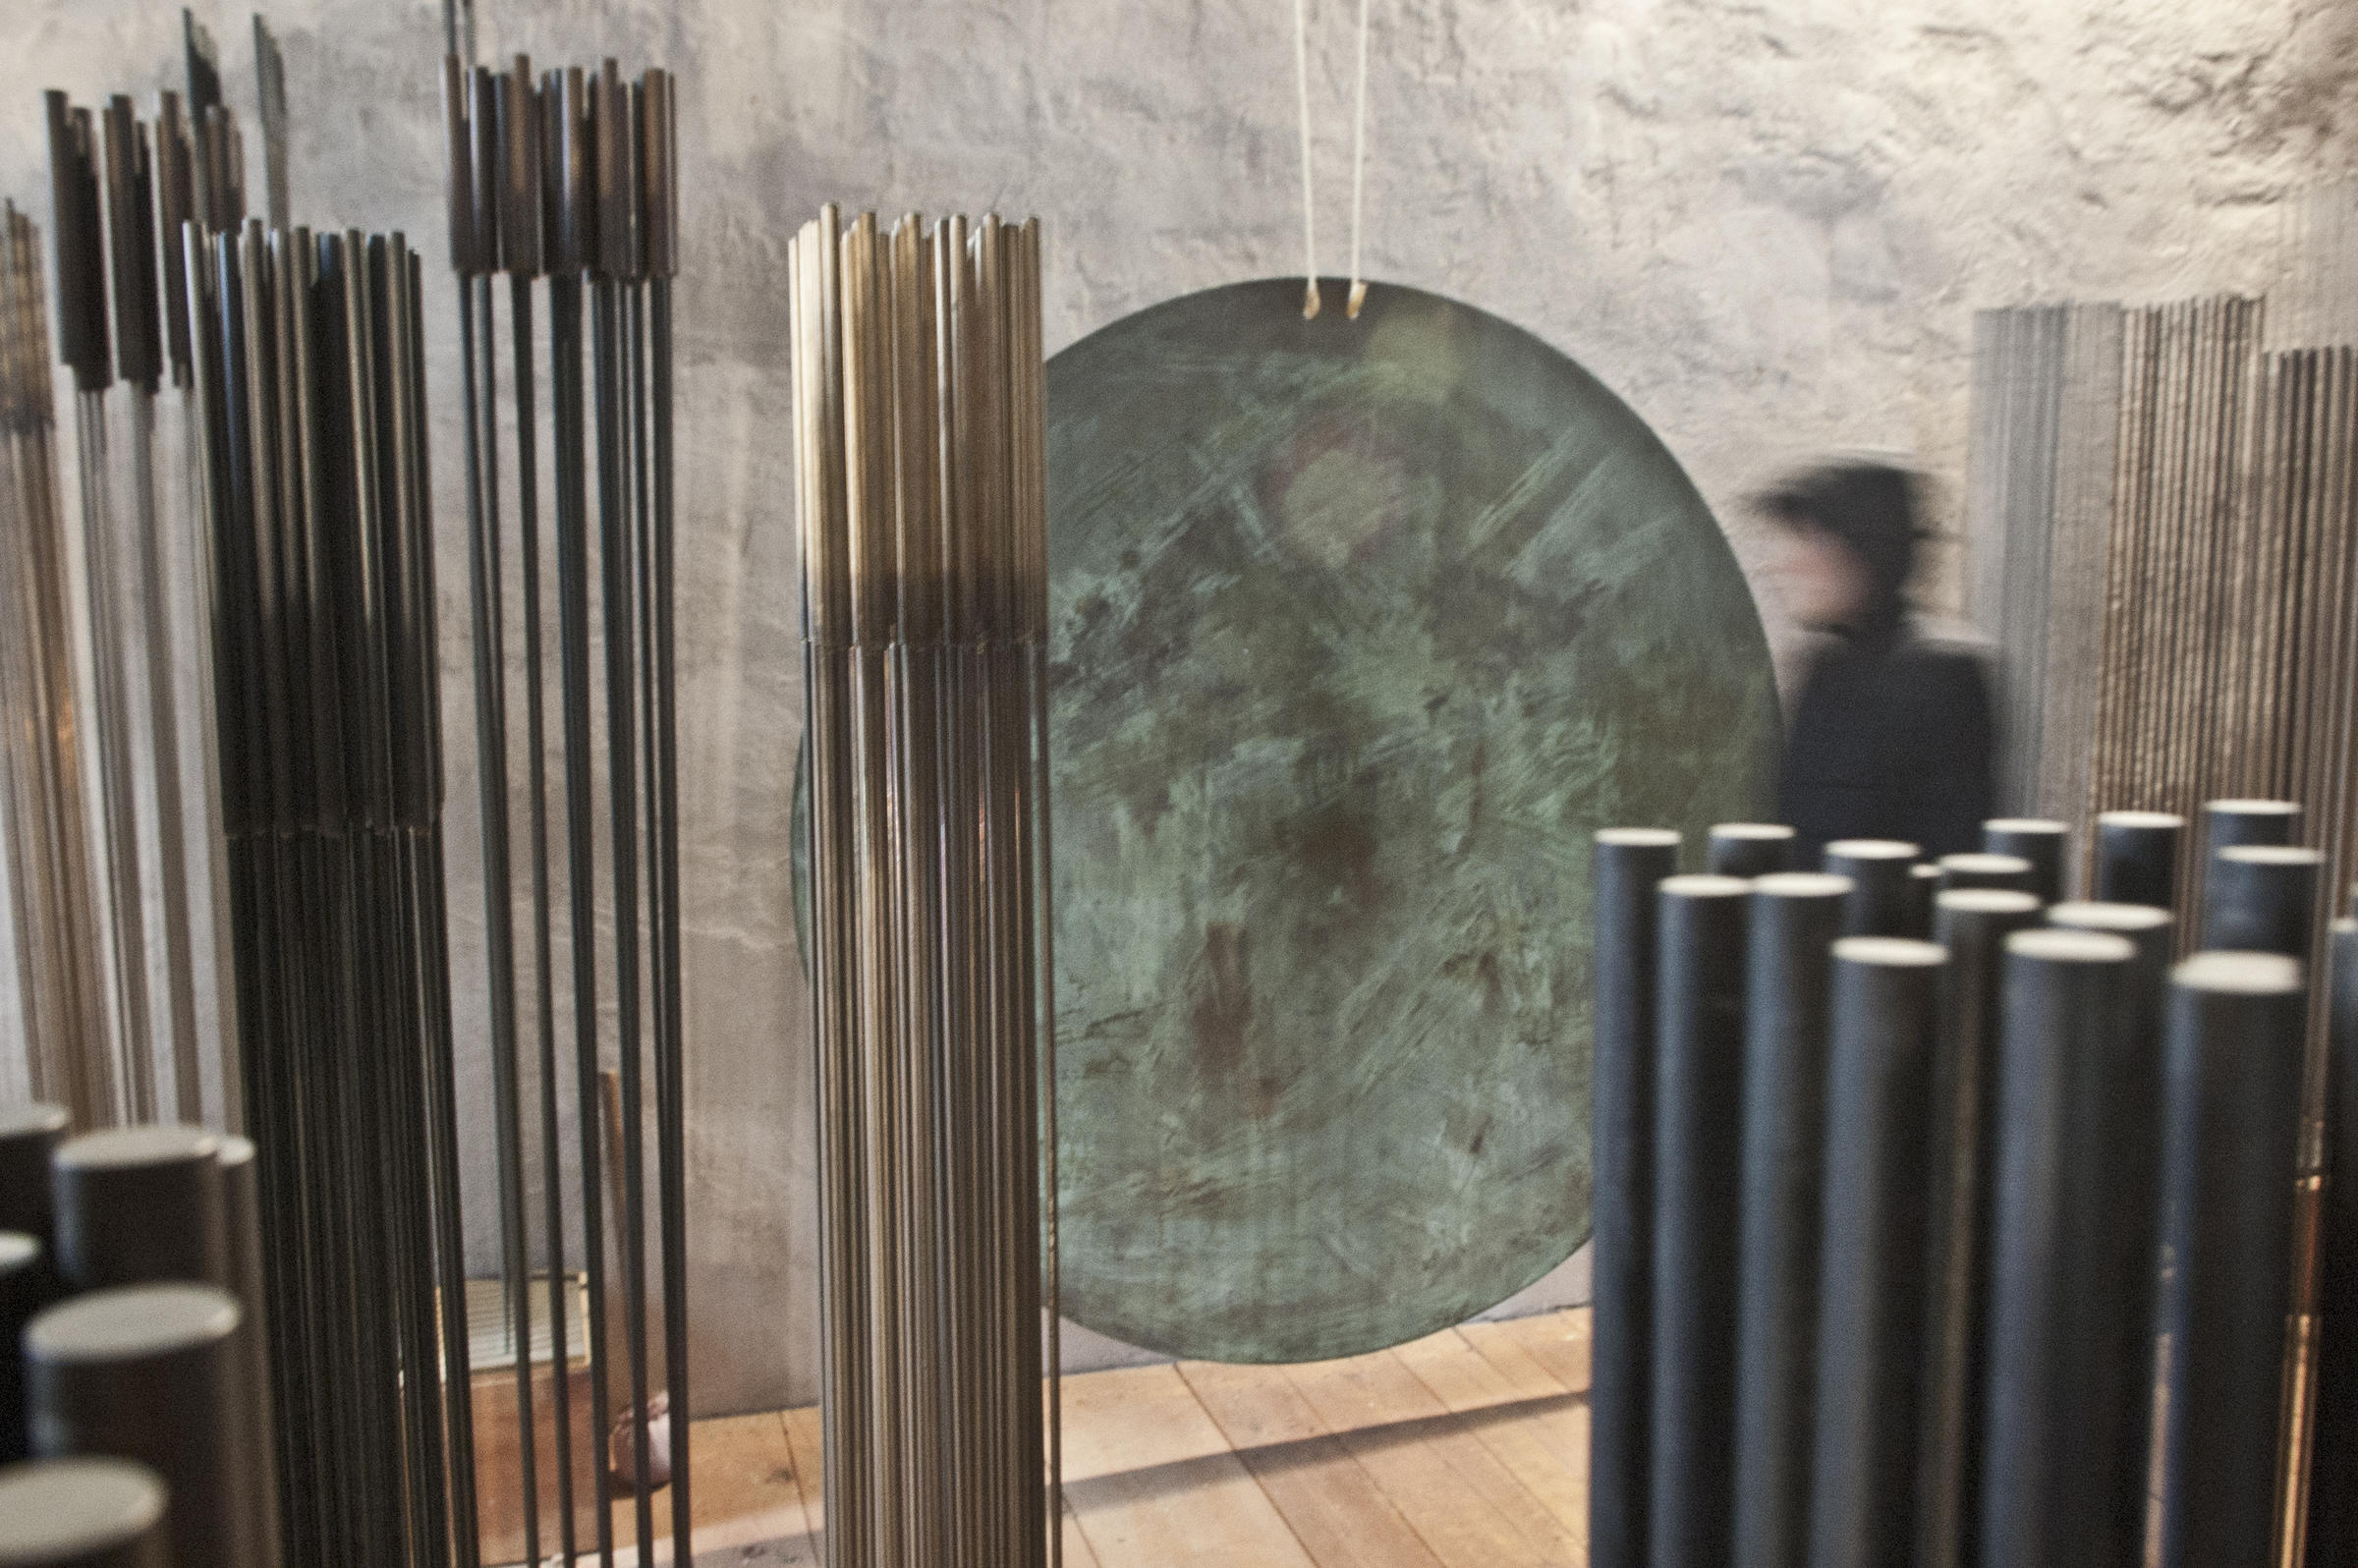 Sound sculptor harry bertoia created musical meditative